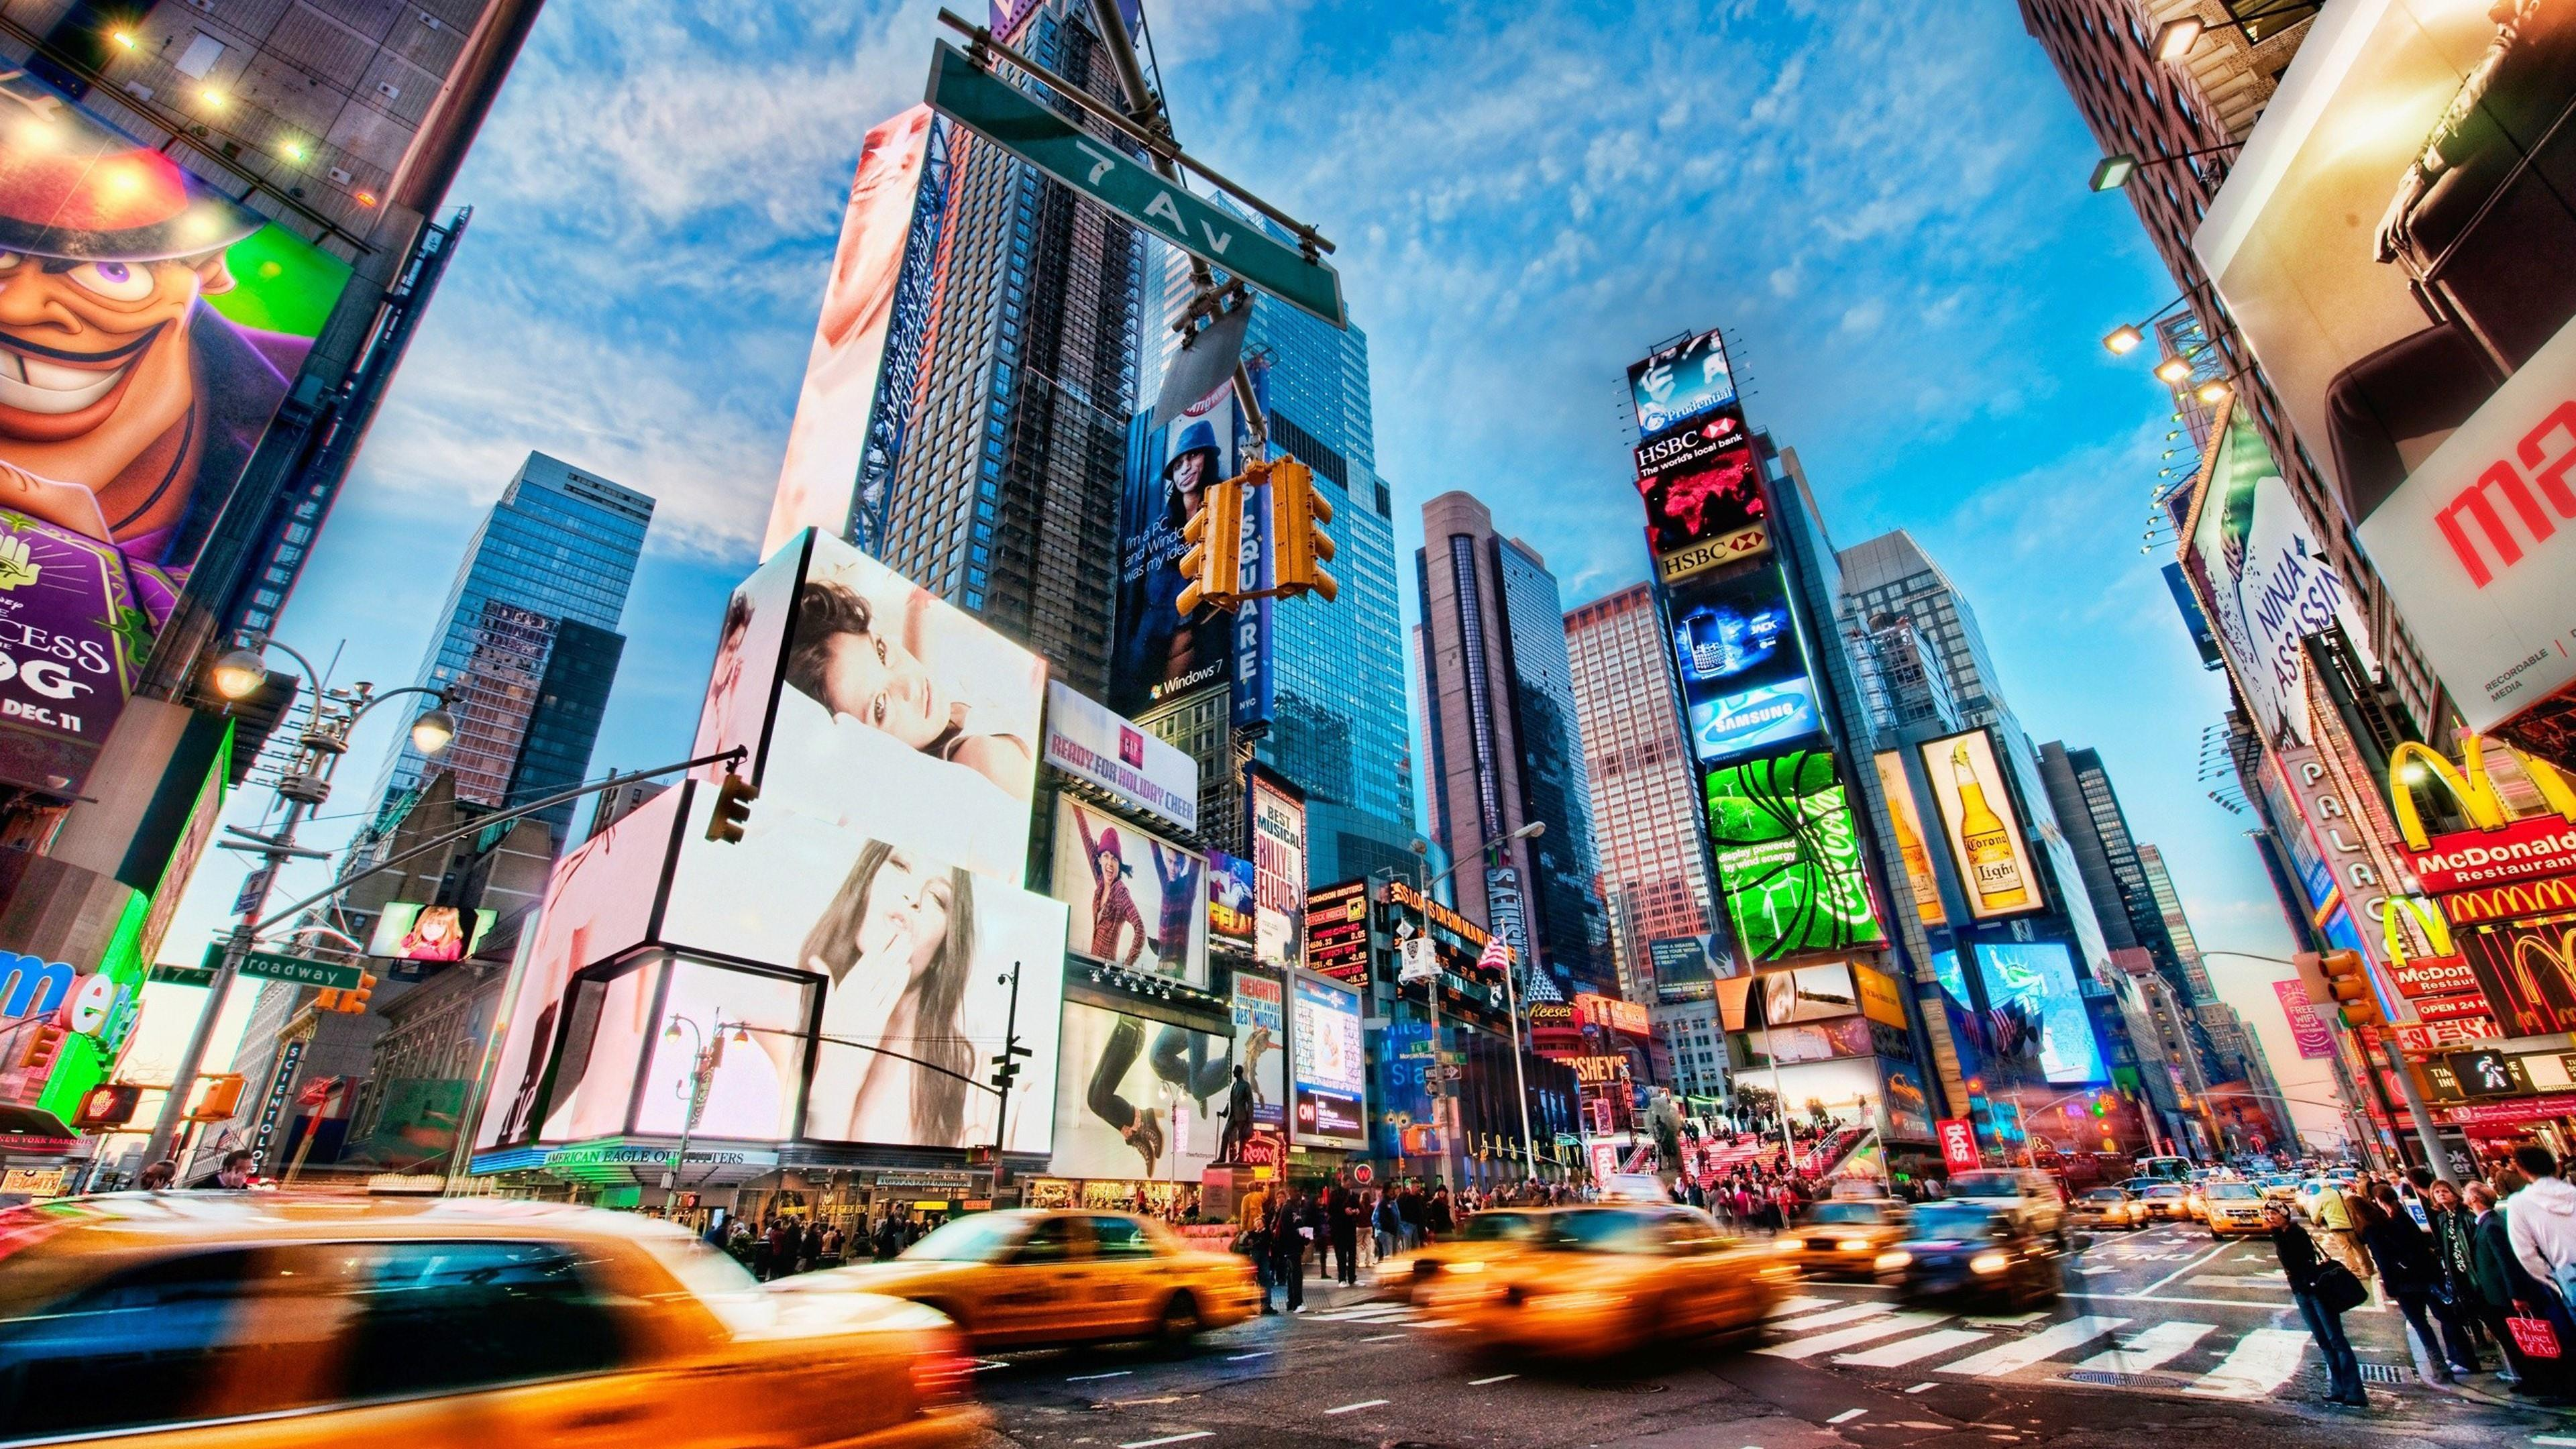 Times Square NYC wallpaper